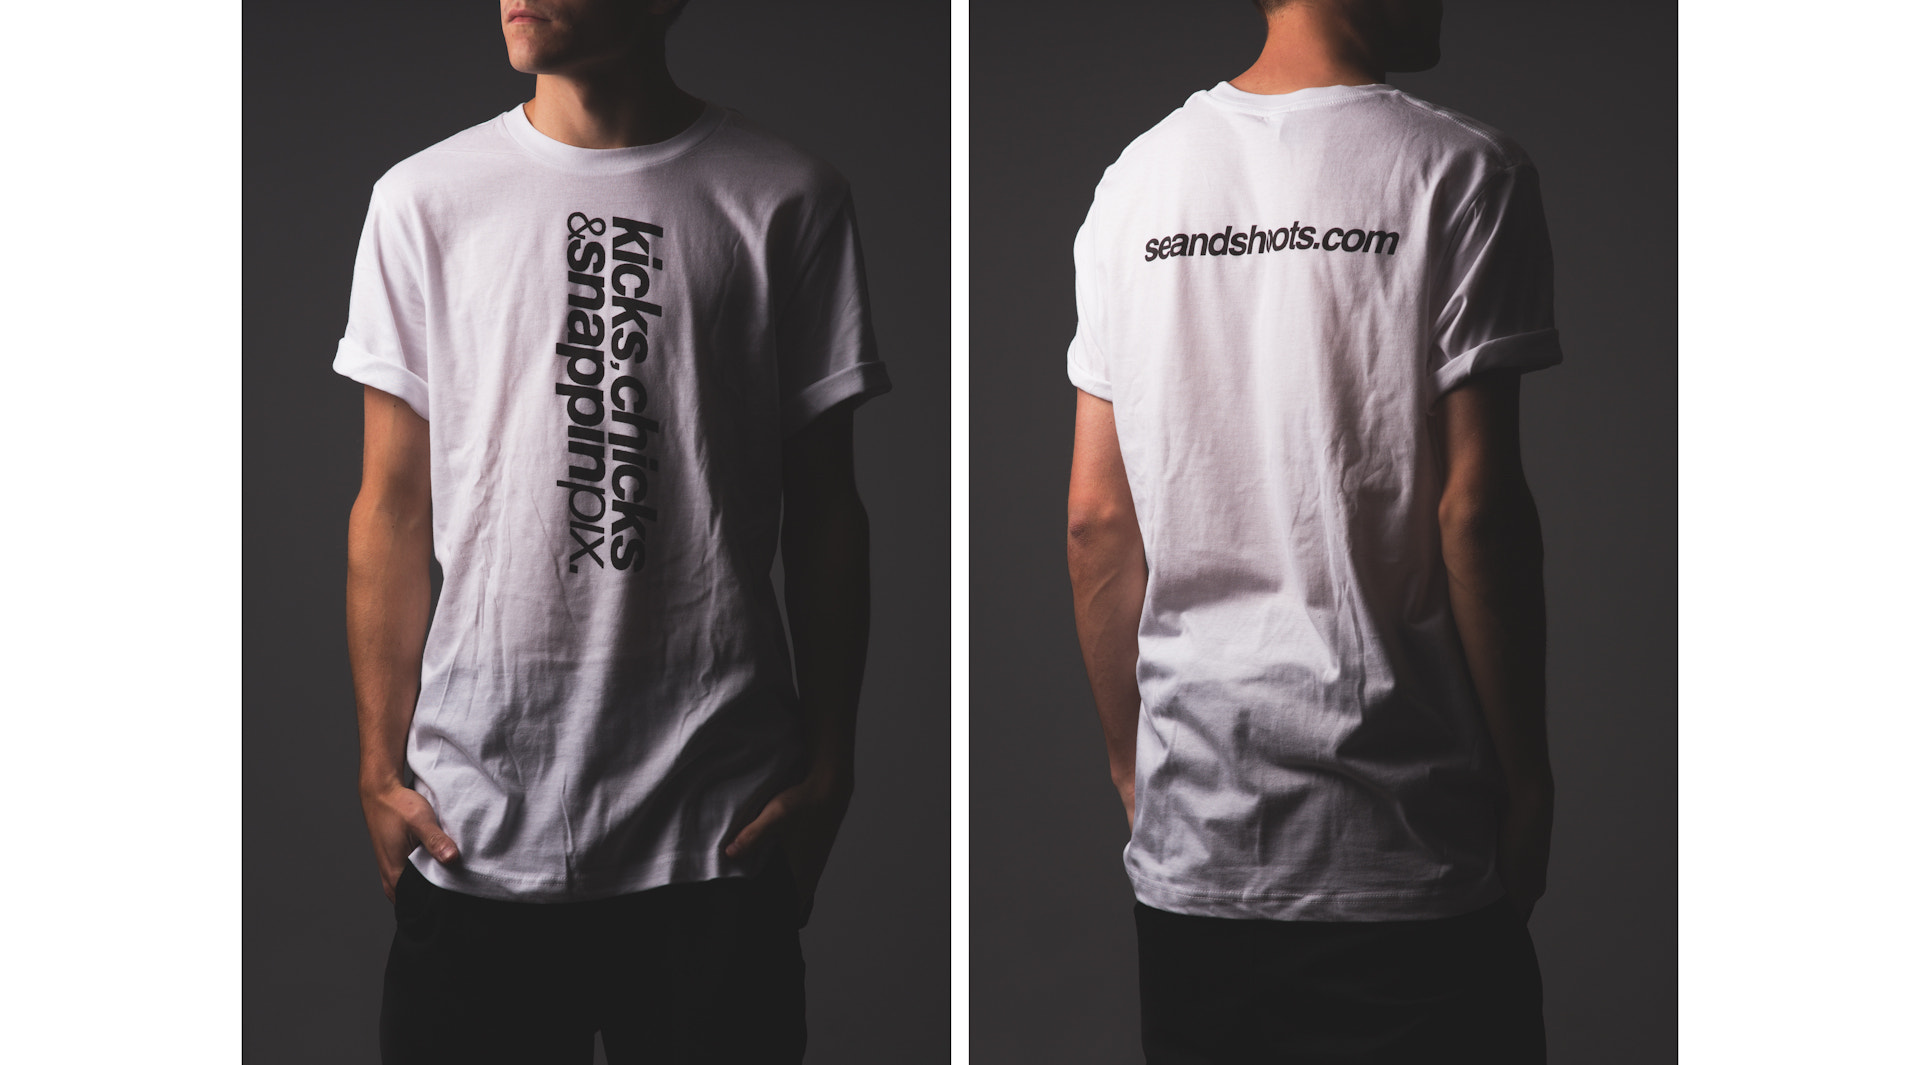 Photograph seandshoots shirts by seandshoots .com on 500px